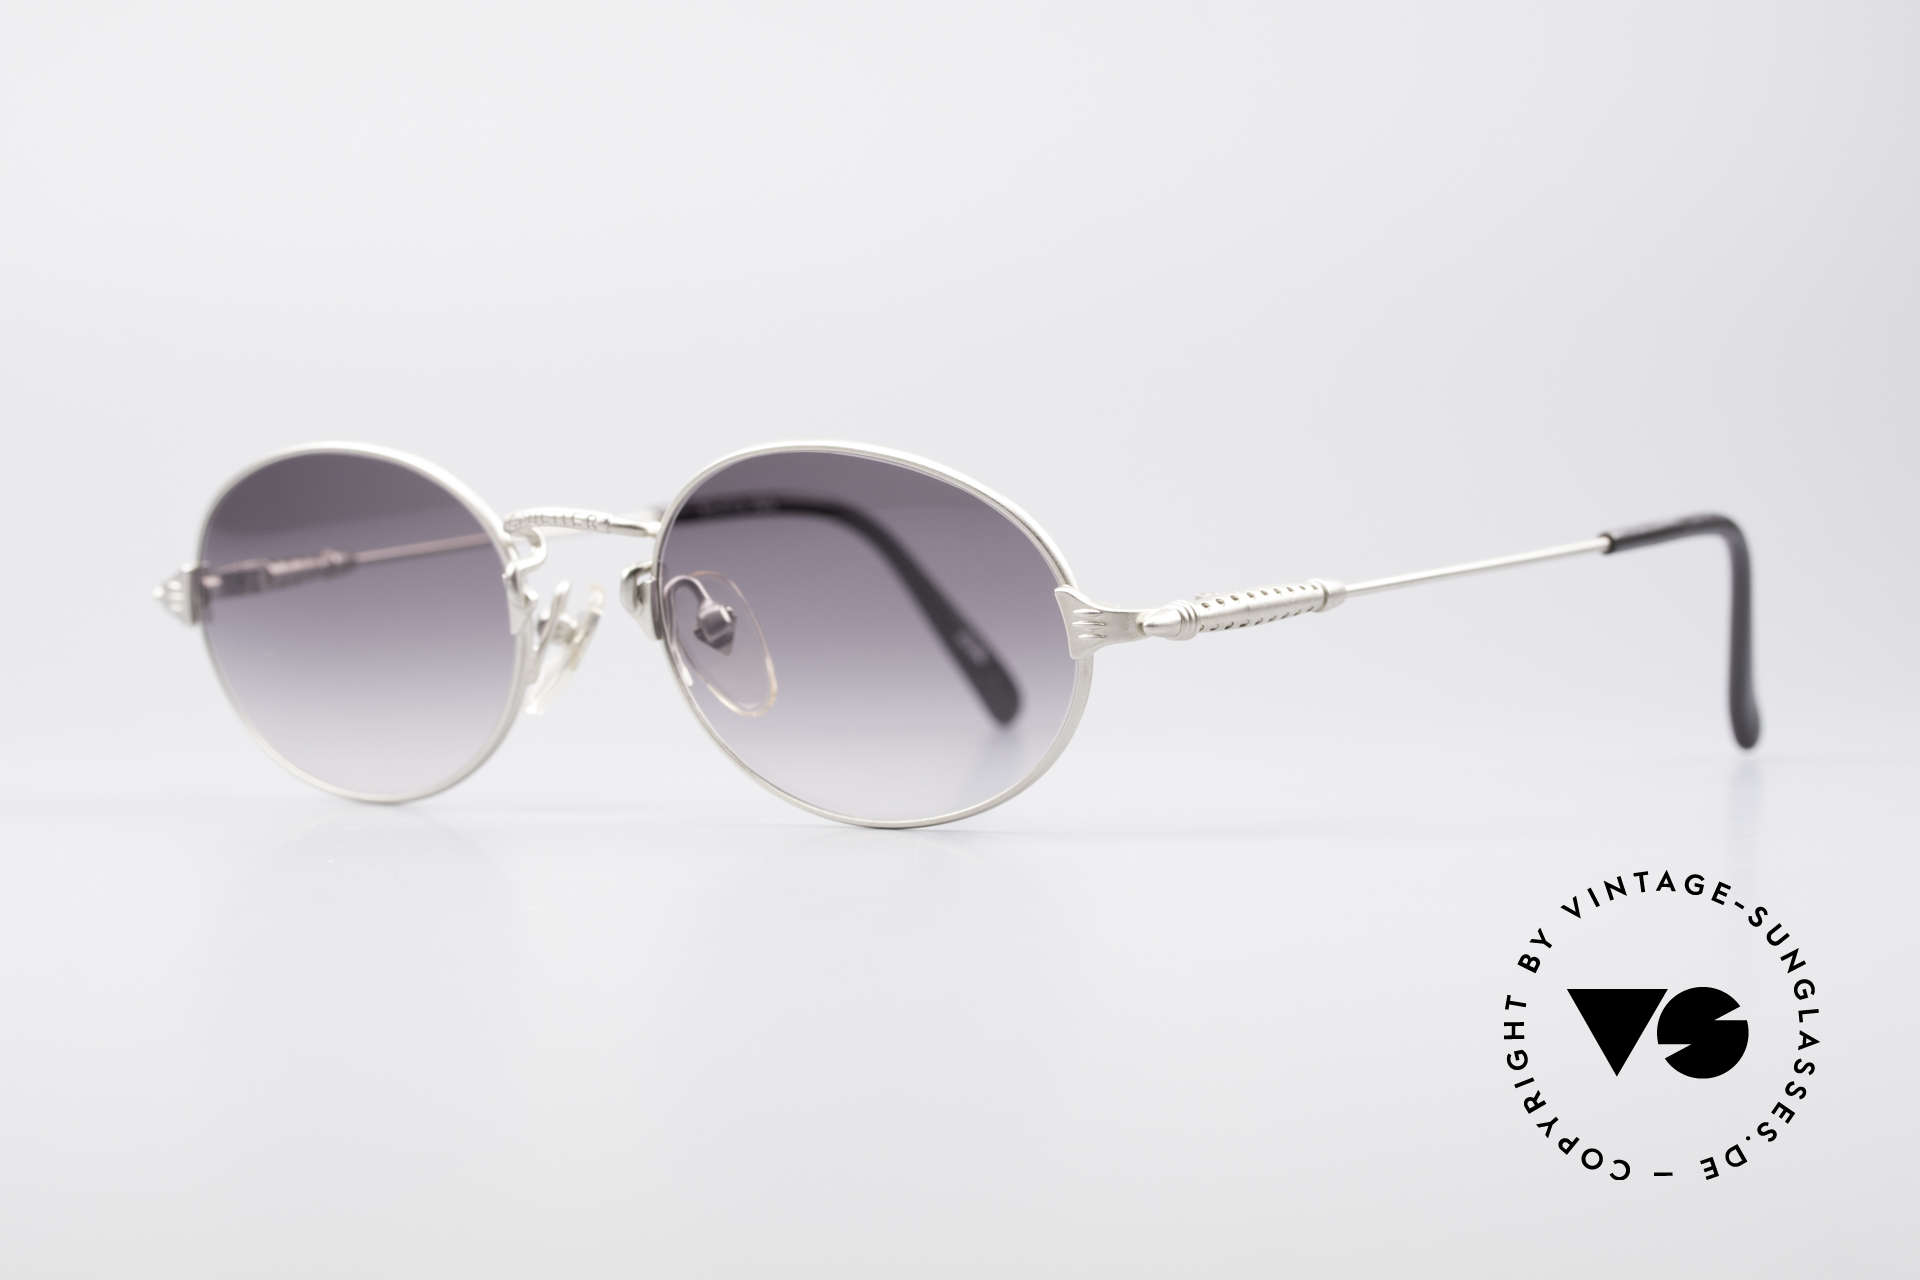 Jean Paul Gaultier 55-6108 Oval Vintage Sunglasses, 'mechanical design' = distinctive GAULTIER collection, Made for Men and Women